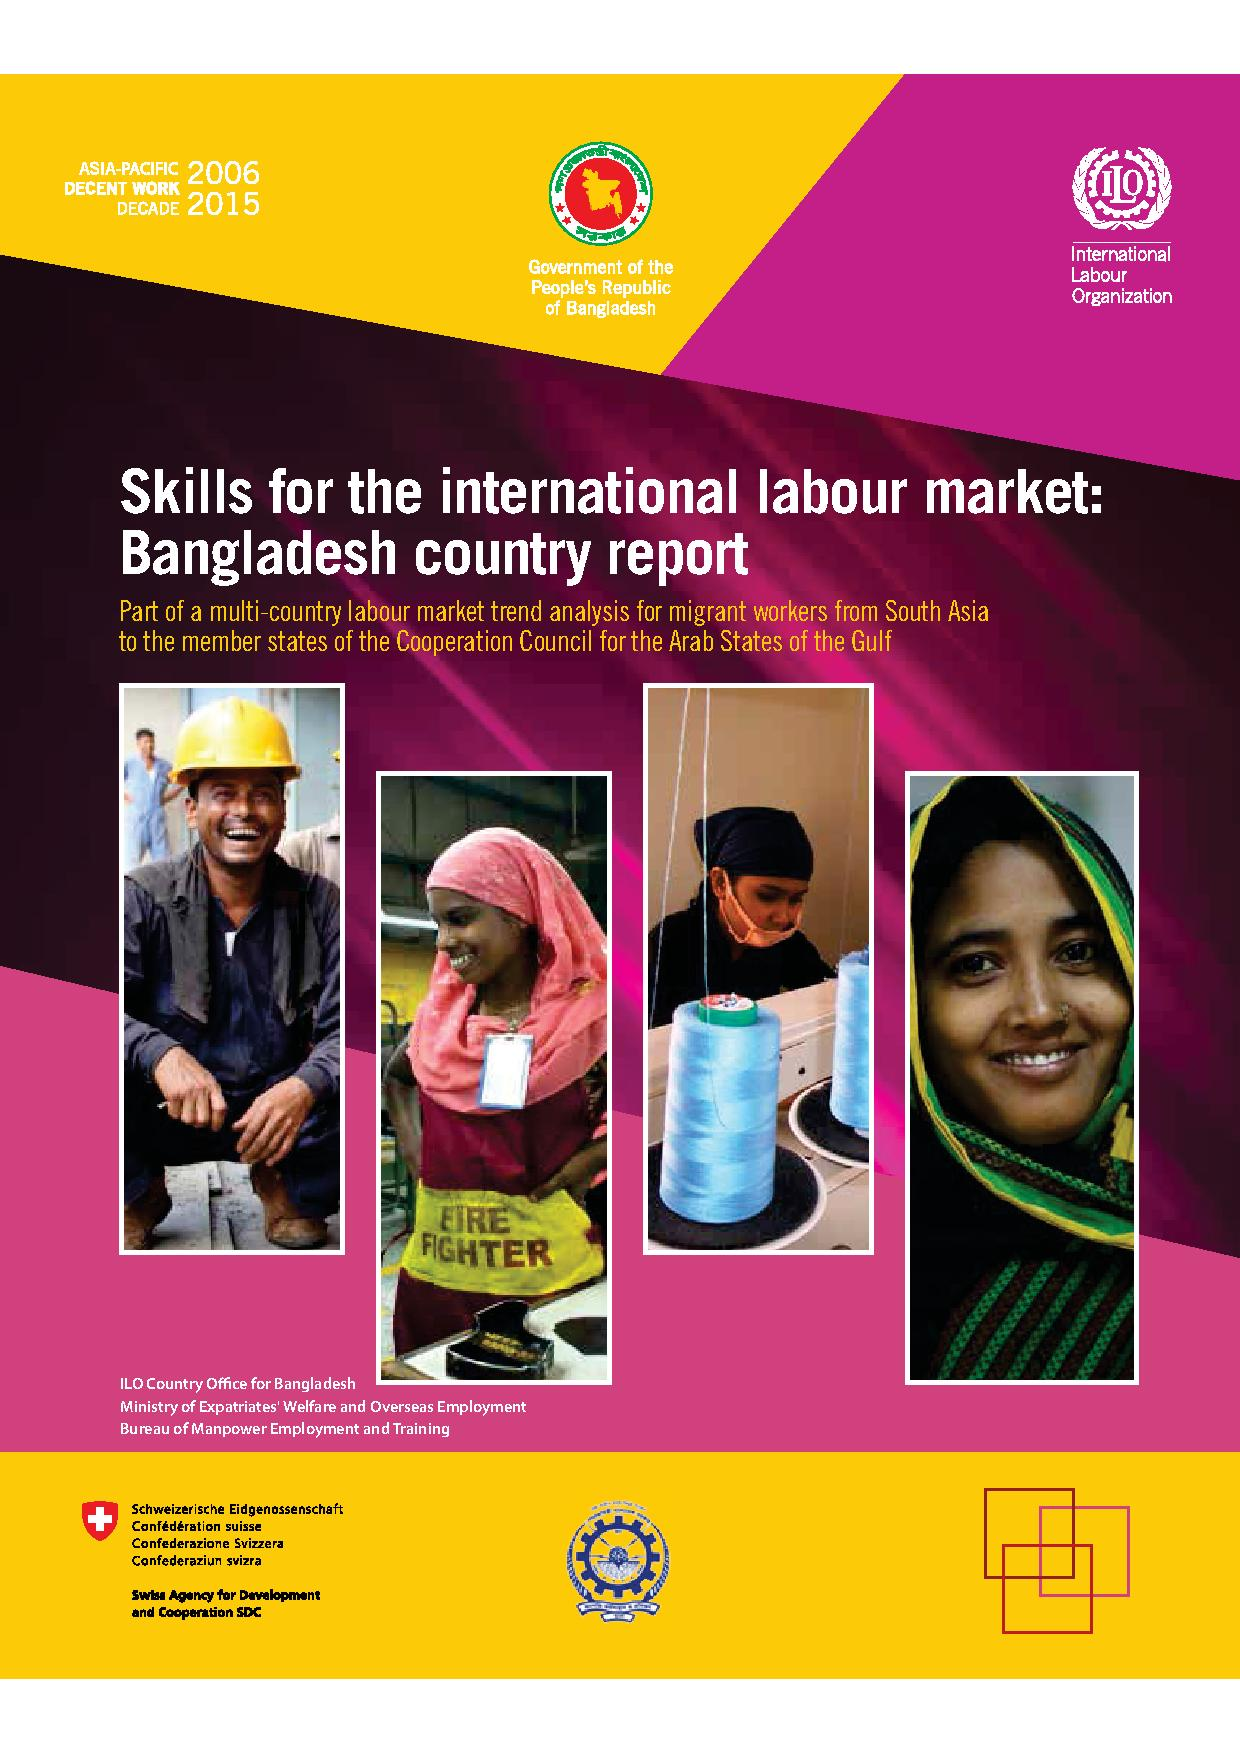 Skills for the international labour market: Bangladesh